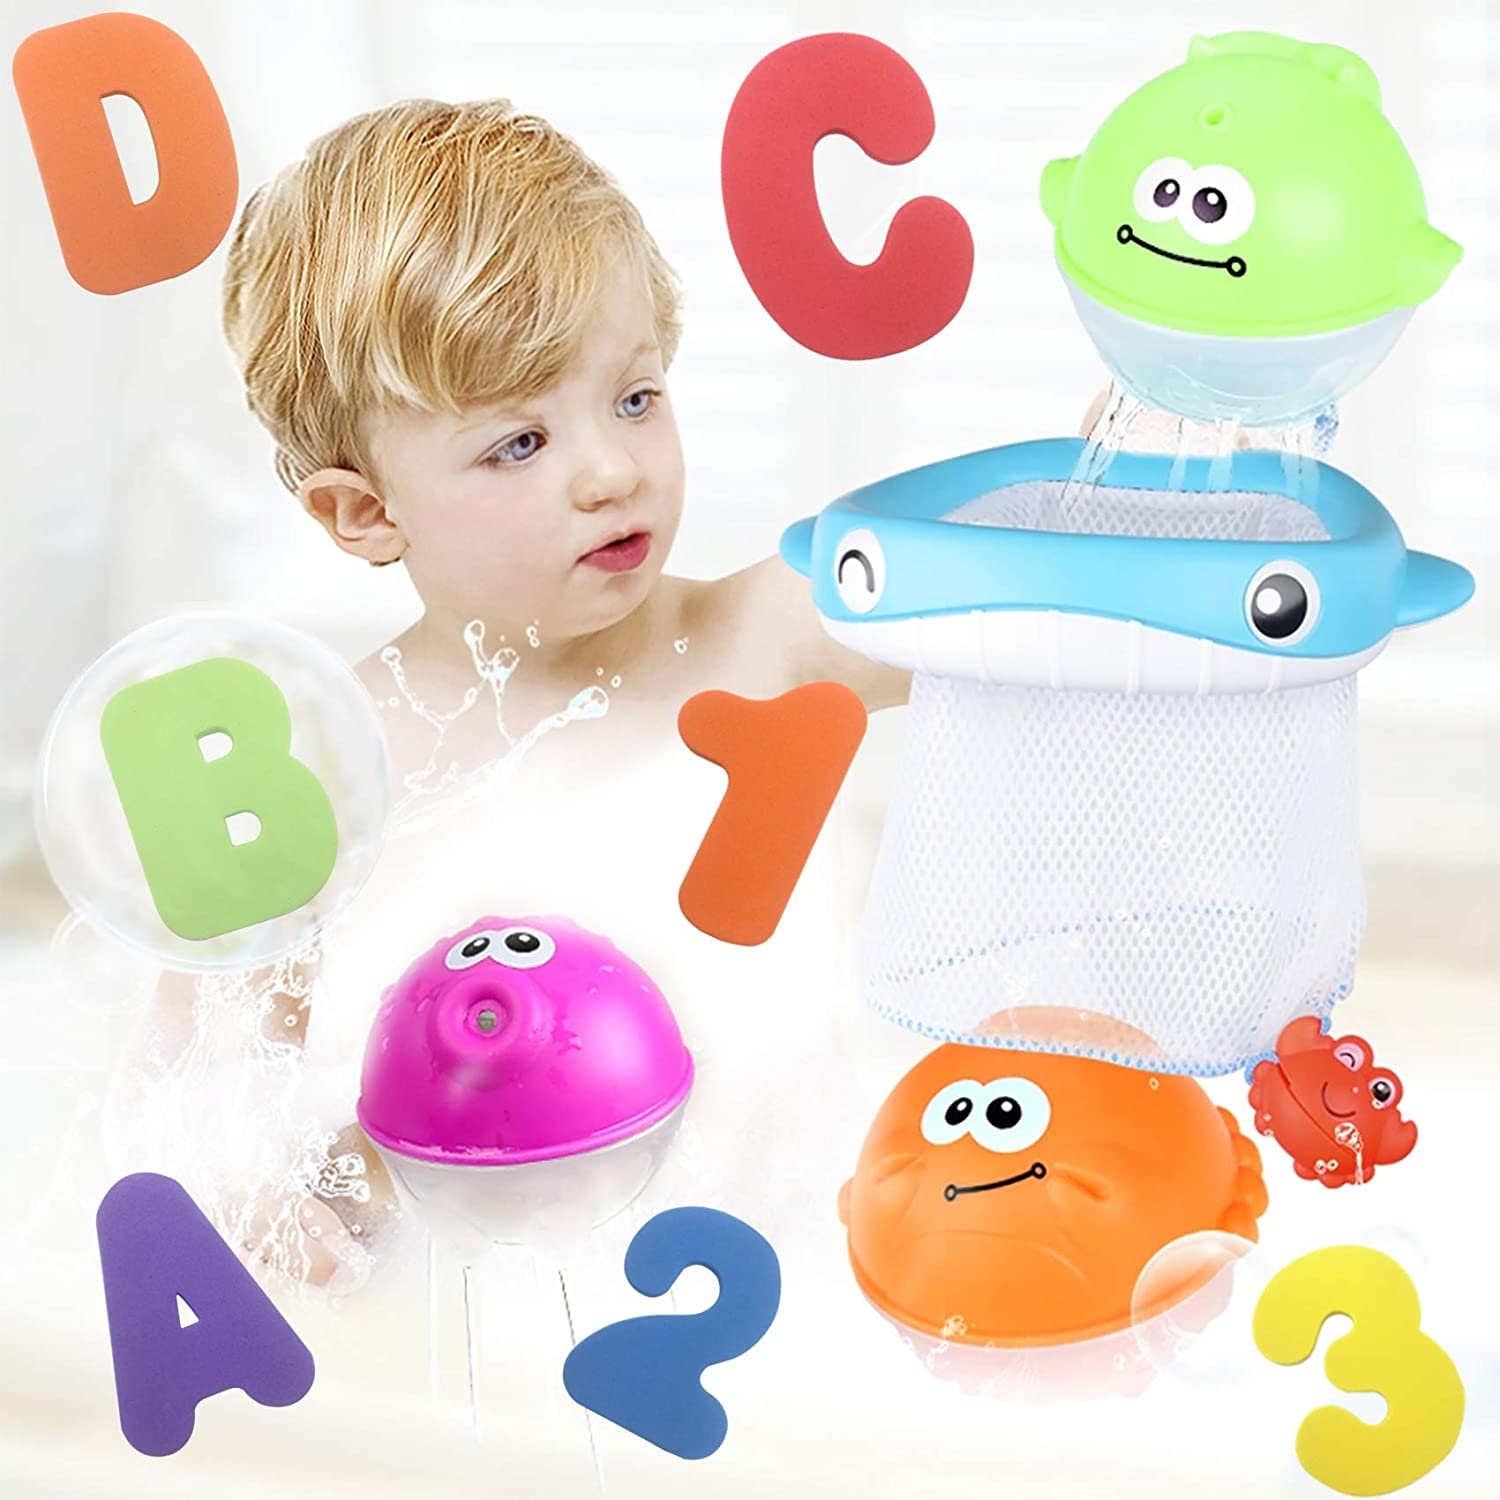 Boat Catching Game for Kids Babies Infants Toddlers 36 Bath Letters /& Numbers Floating Squirts Animal Toys Set with Fishing Net and Organizer Bag Bath Toy Sets Bathtub Time Pool Party Toys